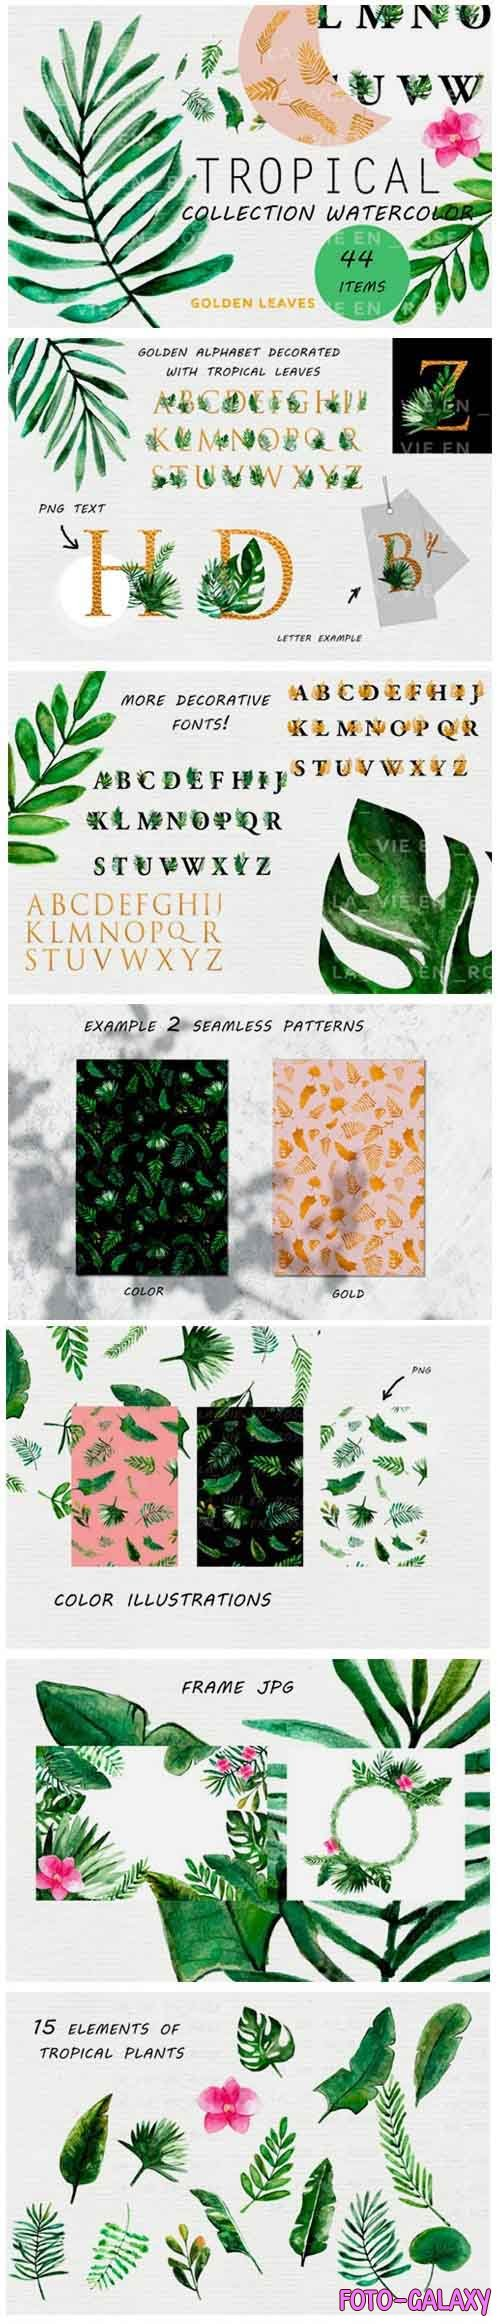 Watercolor clipart with tropical leaves - 741506